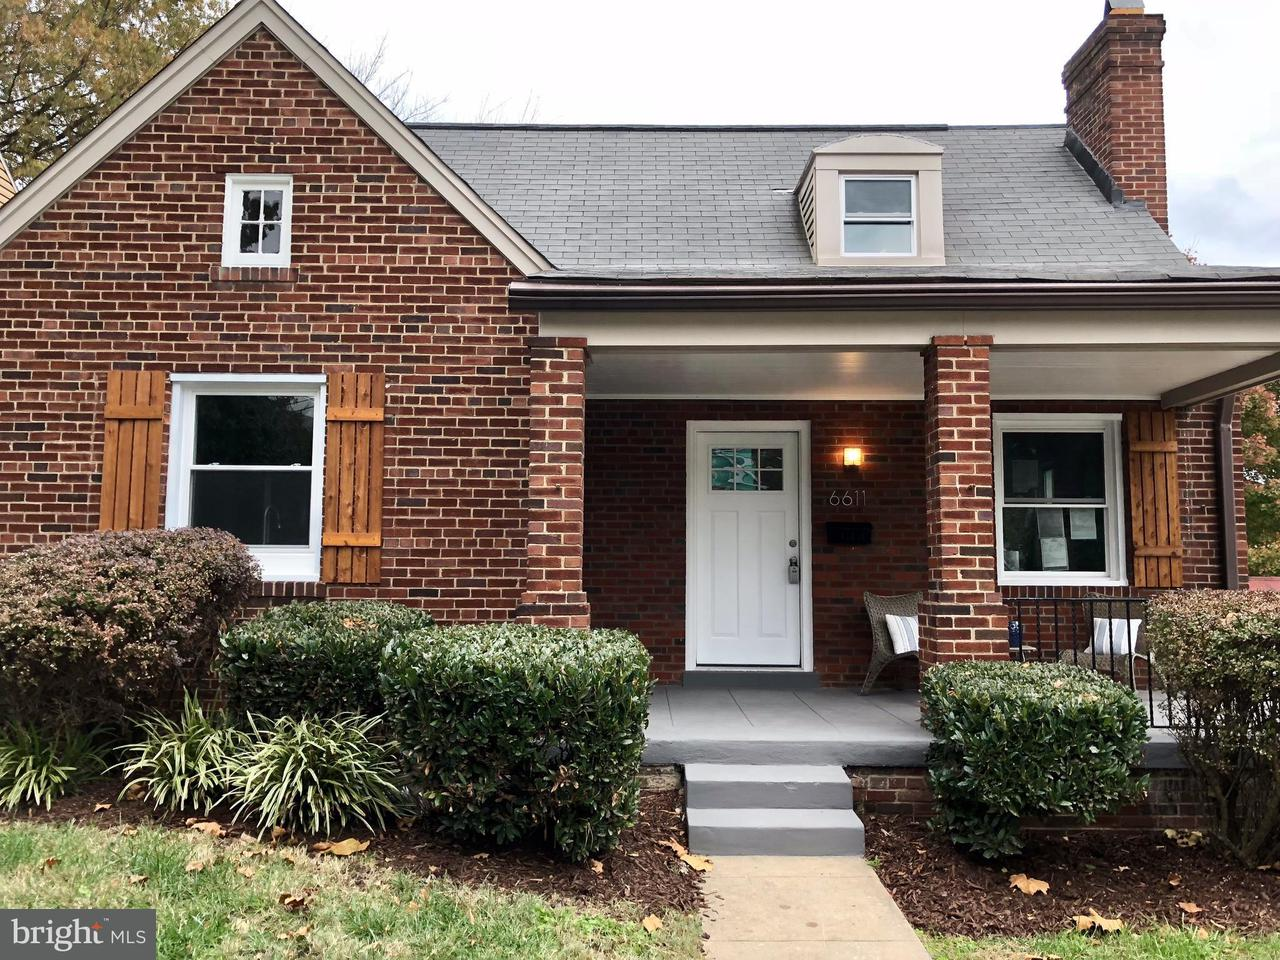 Single Family Home for Sale at 6611 7TH ST NW 6611 7TH ST NW Washington, District Of Columbia 20012 United States